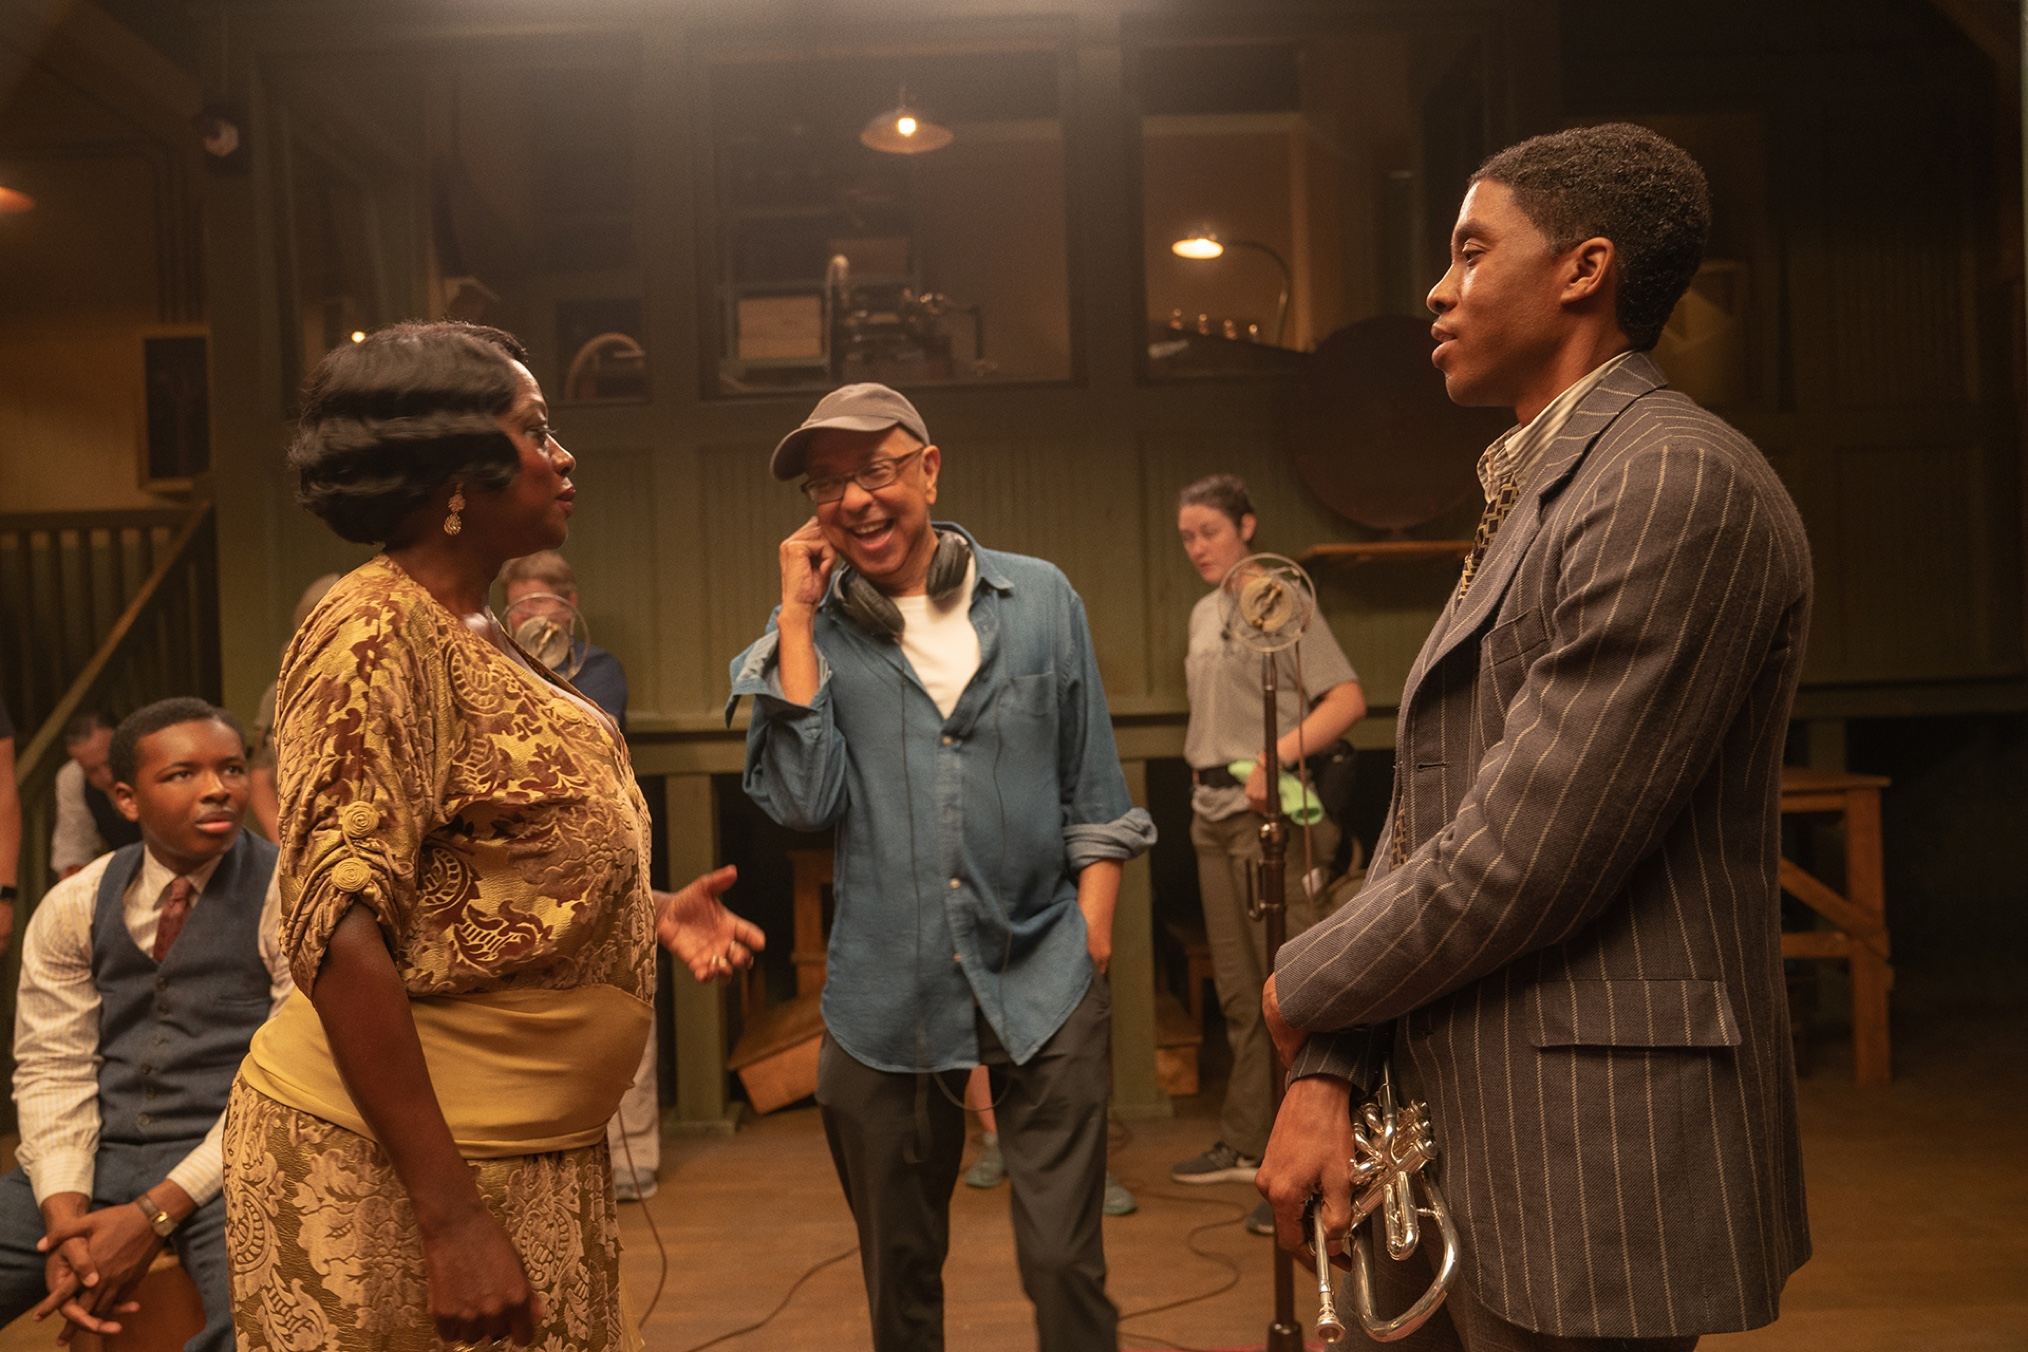 George C. Wolfe directs Viola Davis, looking glamorous in a drapey gold number, and Chadwick Boseman, dapper in pinstripes, in between takes of Ma Rainey's Black Bottom.